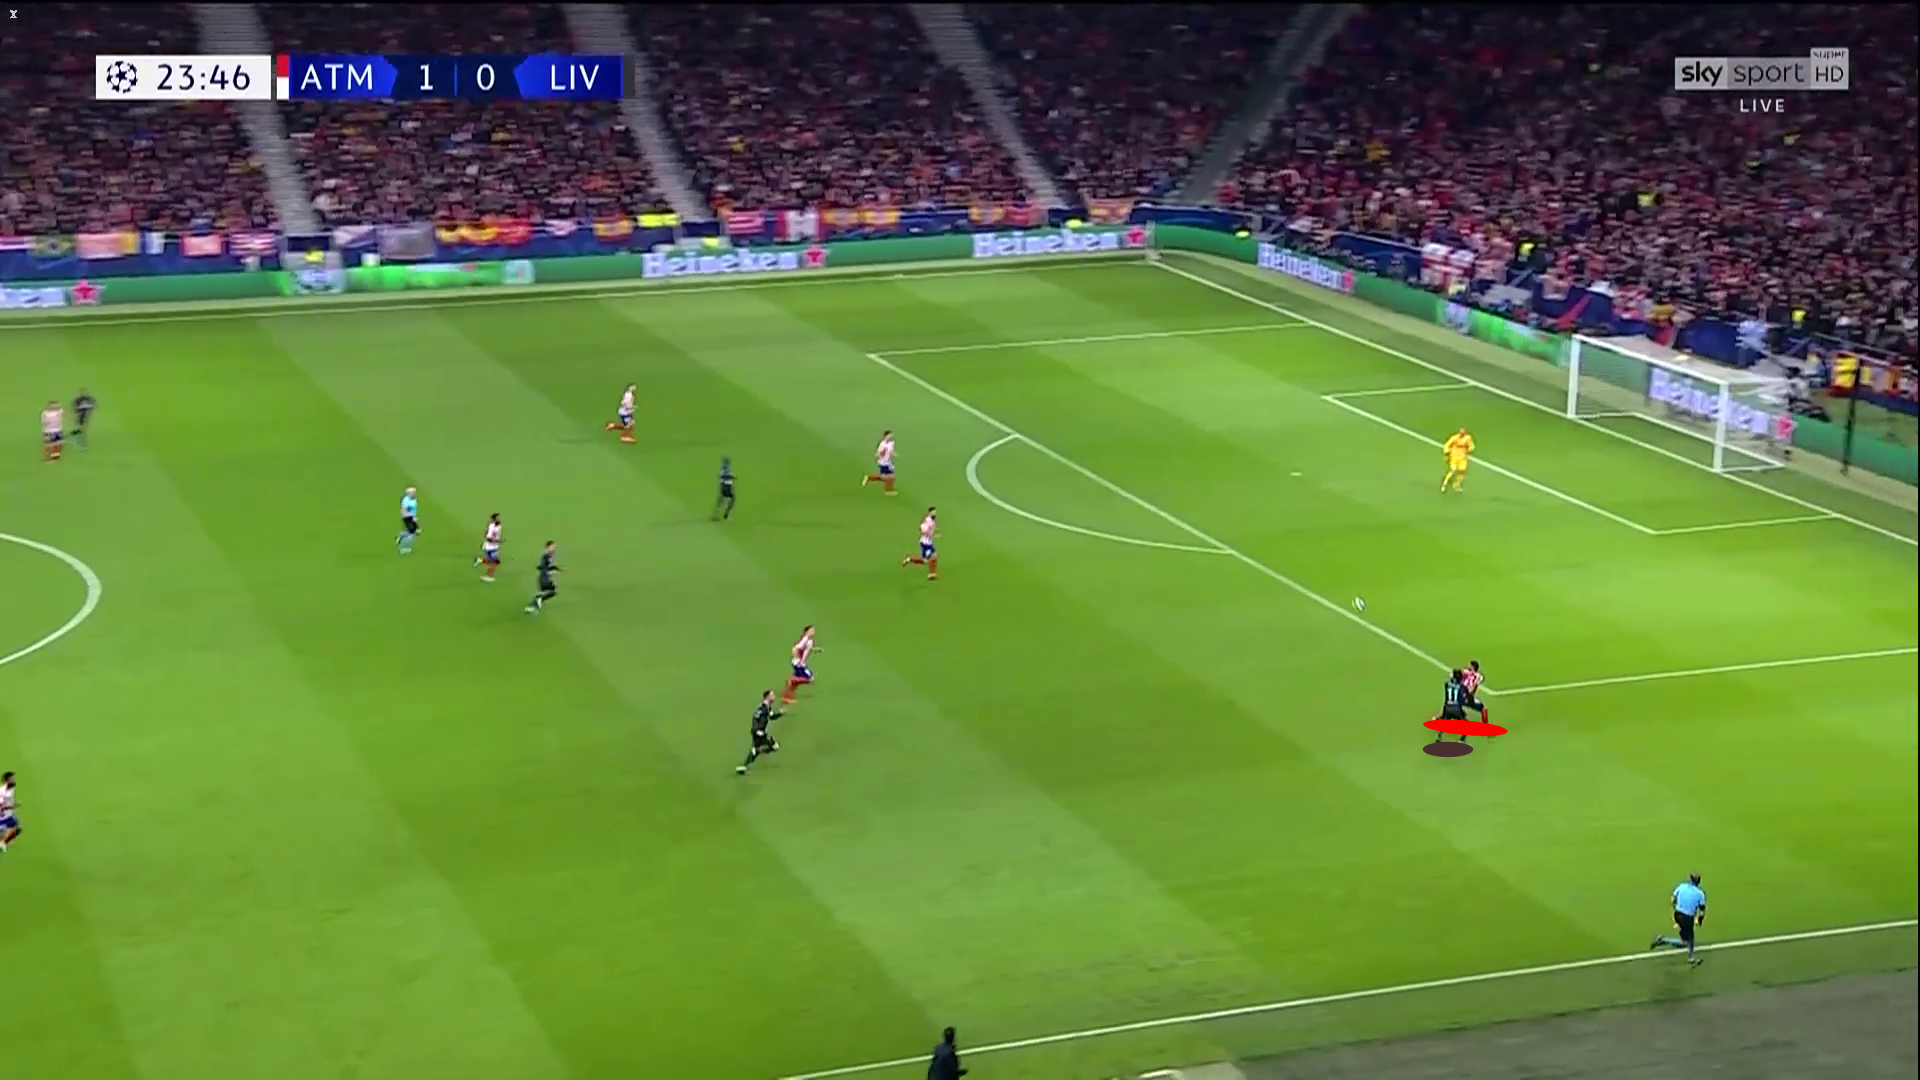 Champions League 2019/20: Atletico Madrid vs Liverpool - tactical analysis tactics